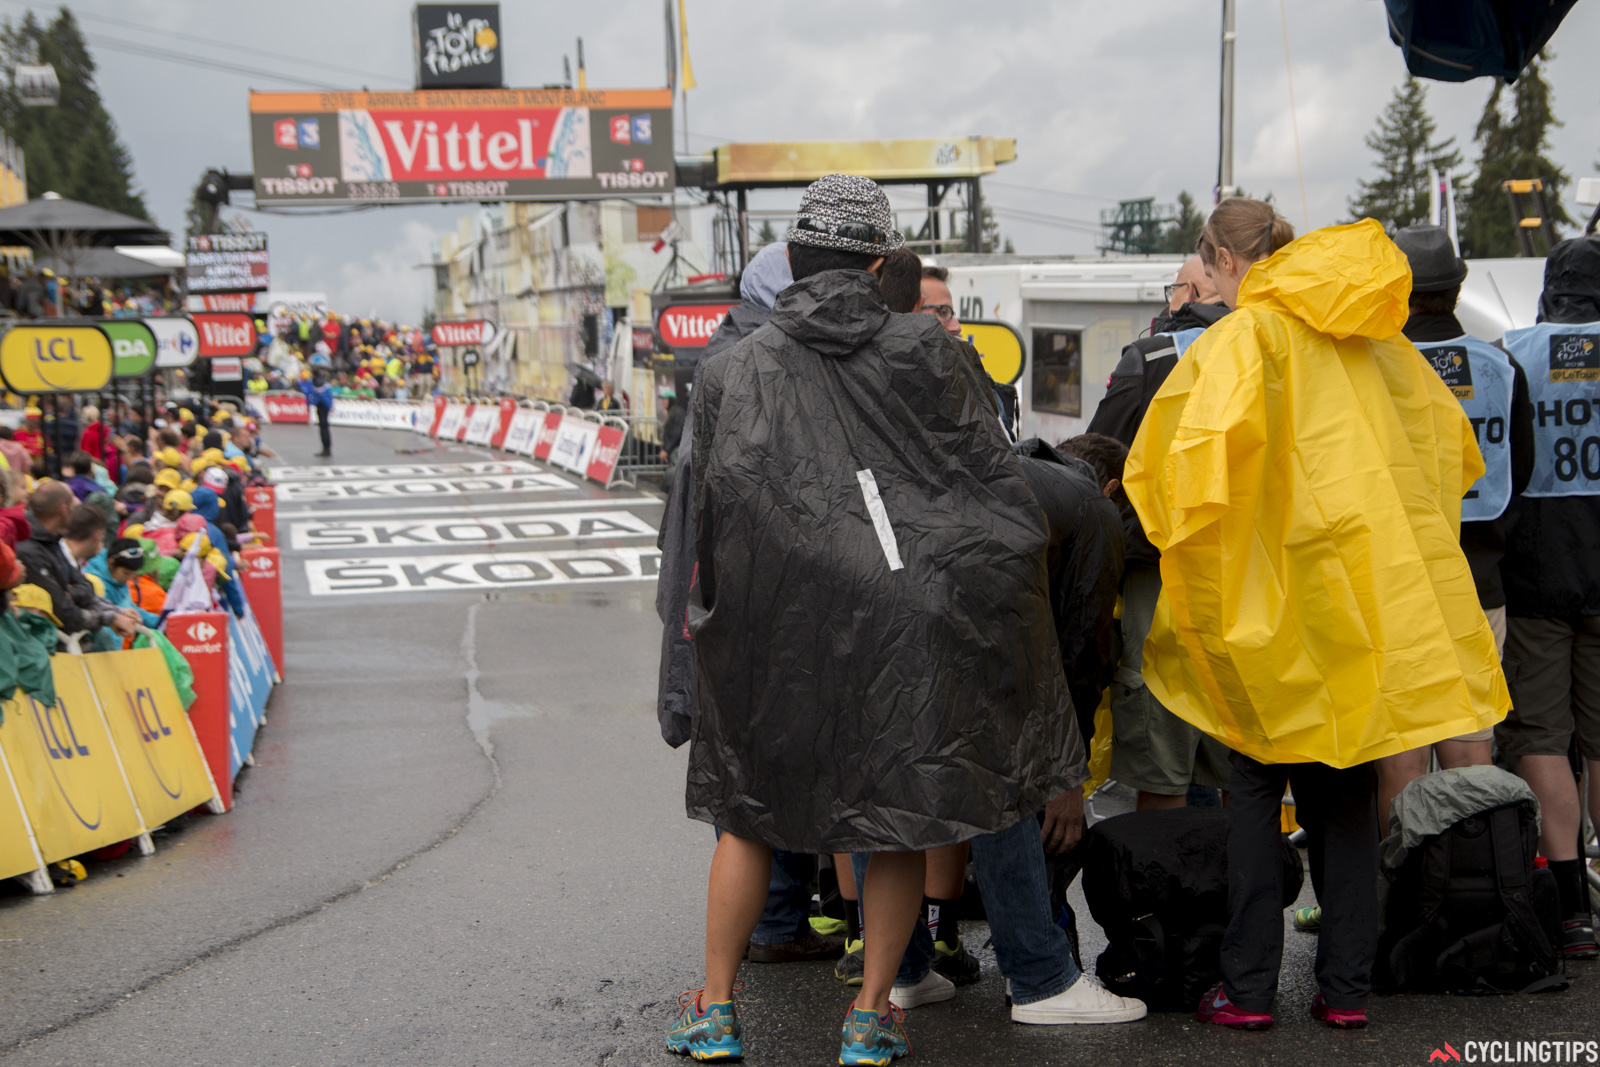 Photographer Ashley Gruber (in yellow) awaits the riders at the finish of stage 19 of the 2016 Tour de France.